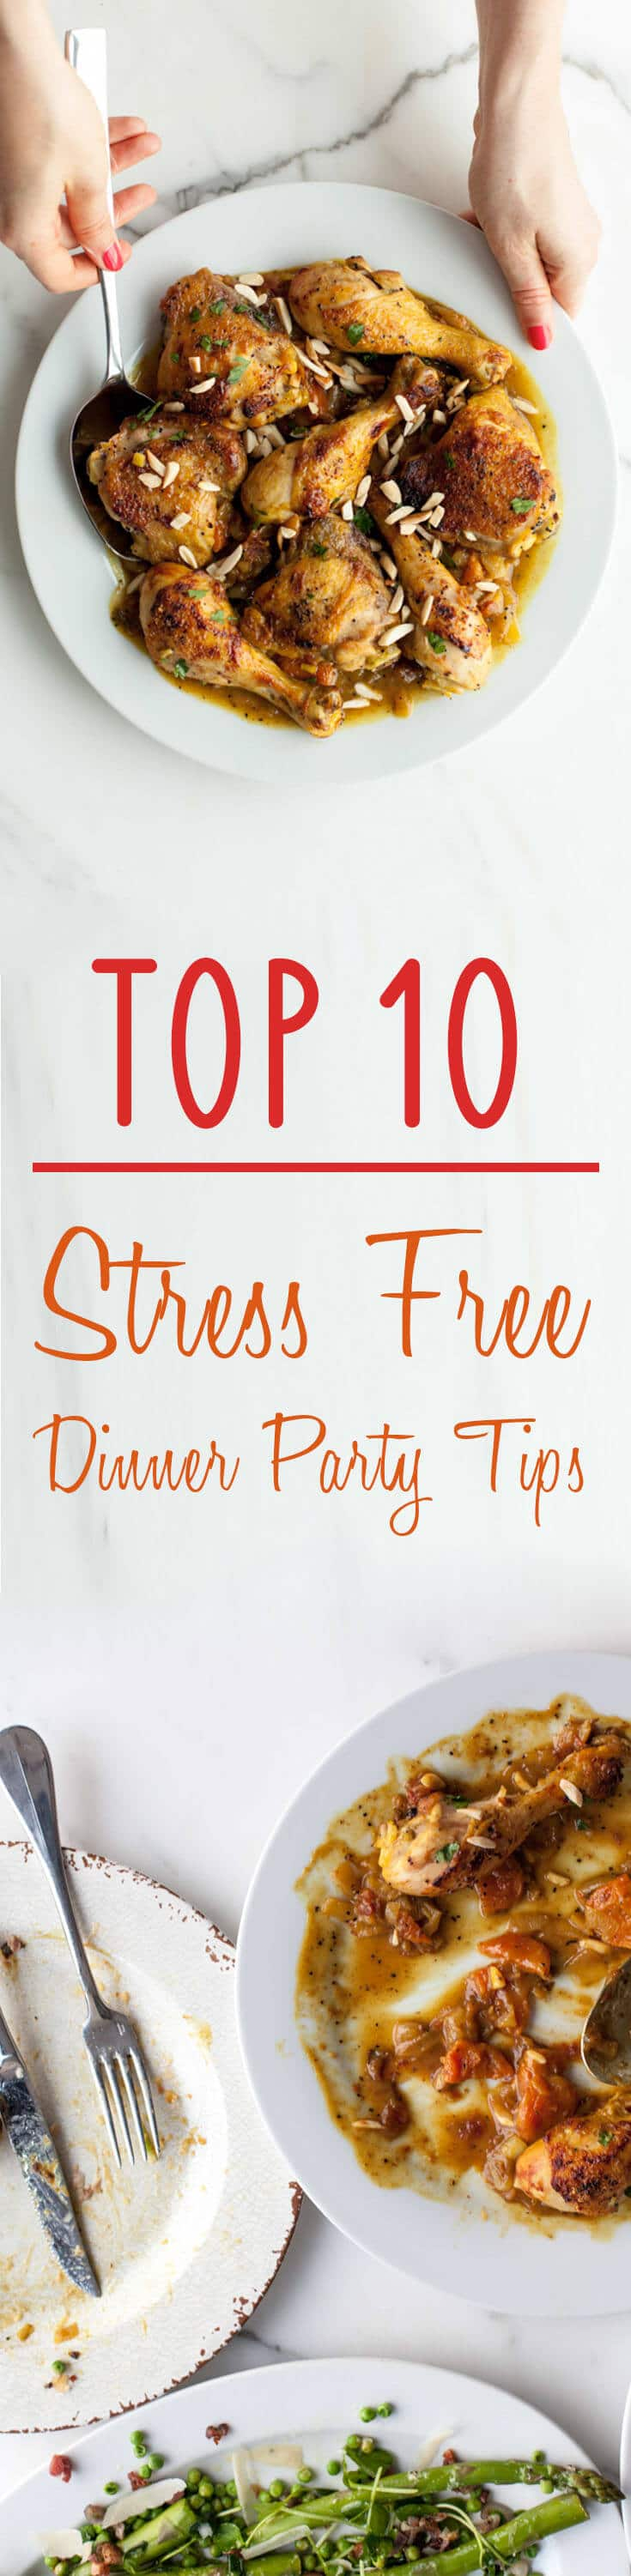 Learn my top 10 stress-free dinner party tips to throw one hell of an impressive dinner party this holiday season!